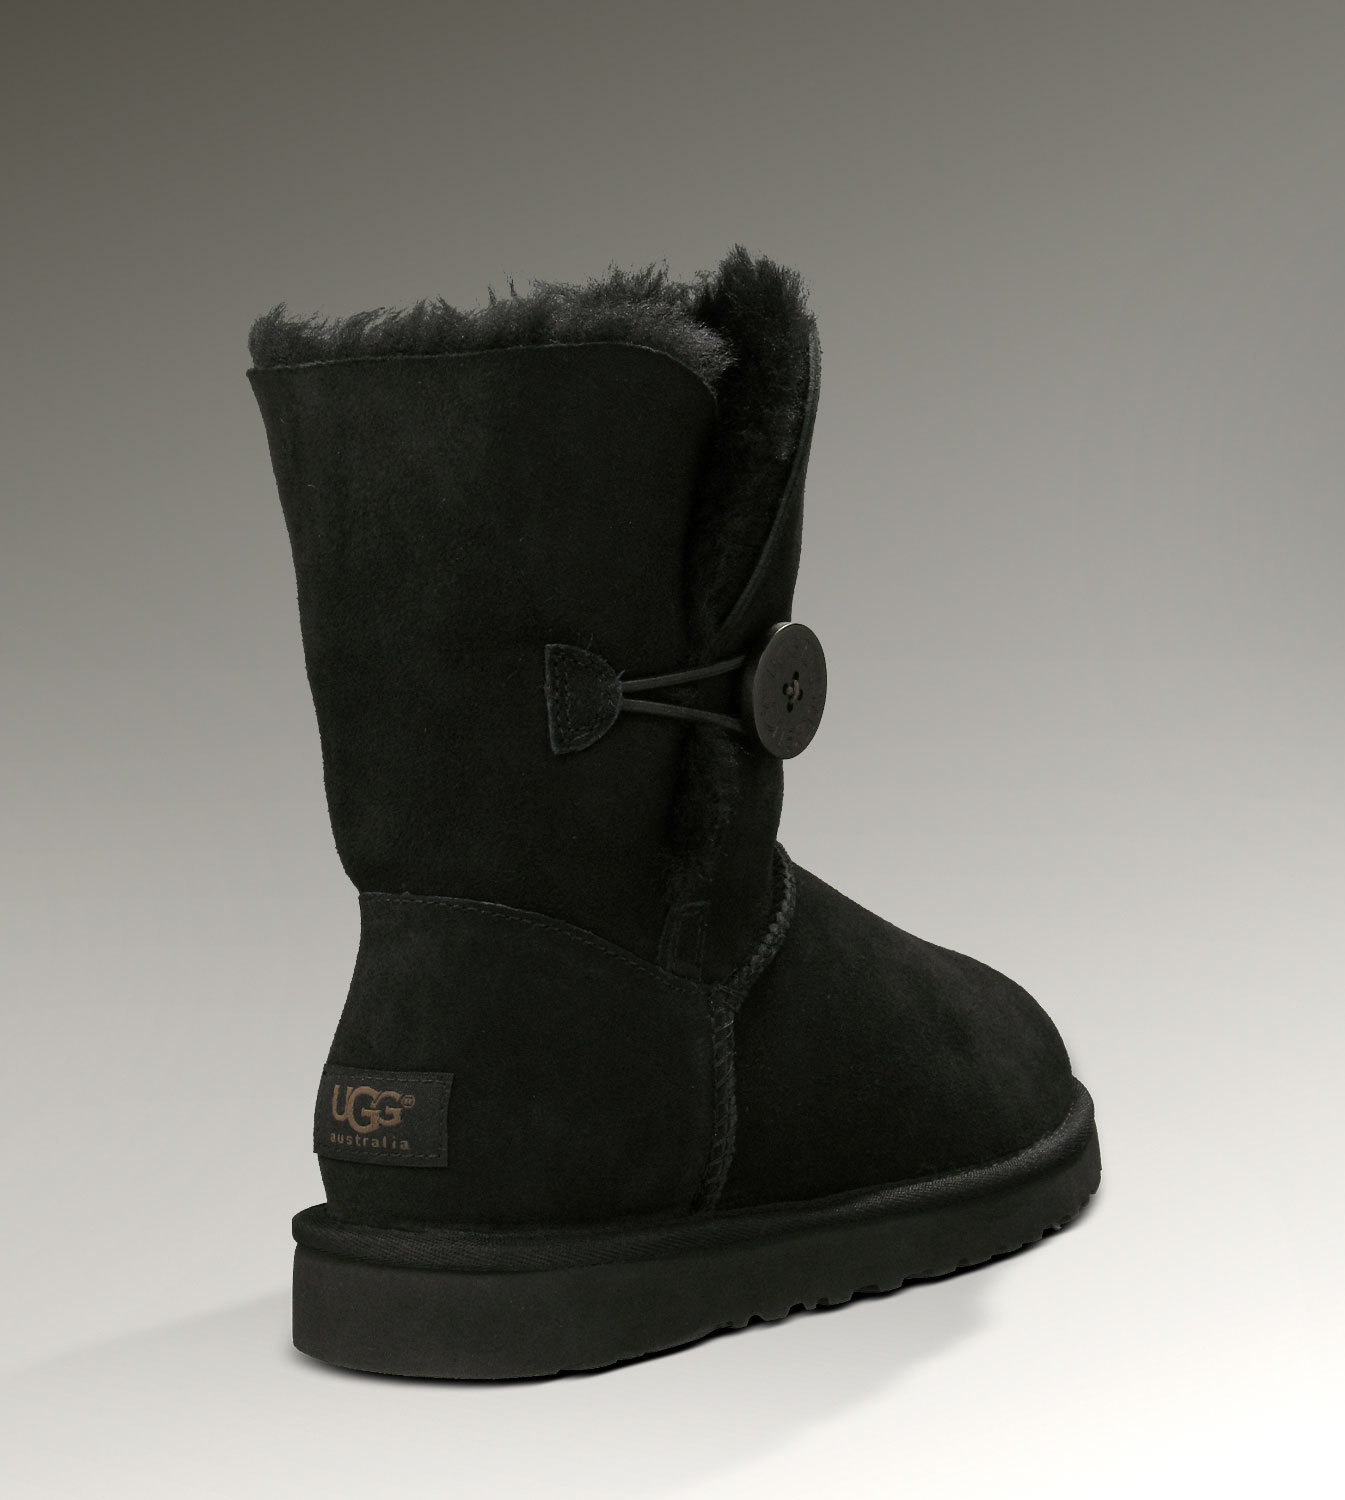 UGG Bailey Button 5803 Black Boots